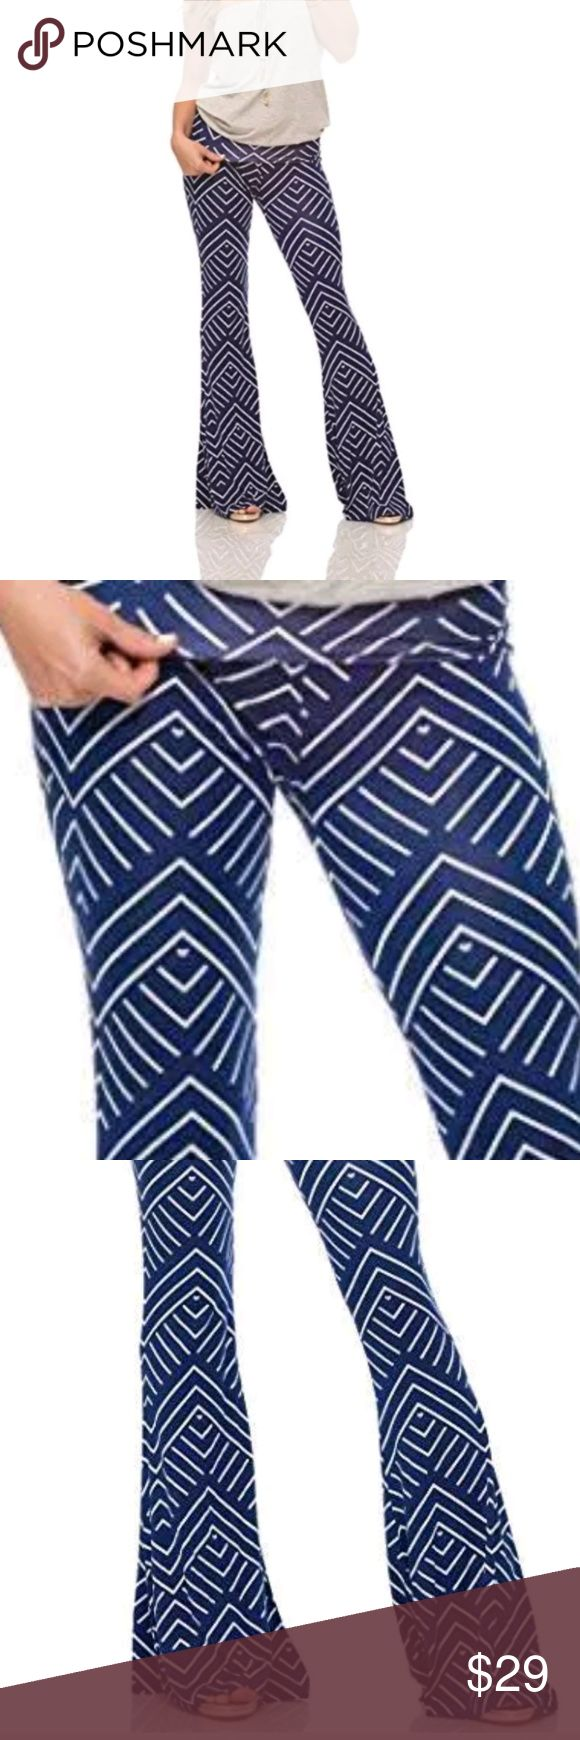 Macbeth Piazza Roll-Over Chevron Pants Navy Stripe Piazza Roll-over pants in a Navy blue and White Chevron Stripe print. Comfortable, stylish, with a great vintage look.  Macbeath Collection. Retails $60   SIZED SMALL Fits Sizes 5-8  SIZED XS Fits Sizes 0-4 Macbeth Collection Pants Leggings